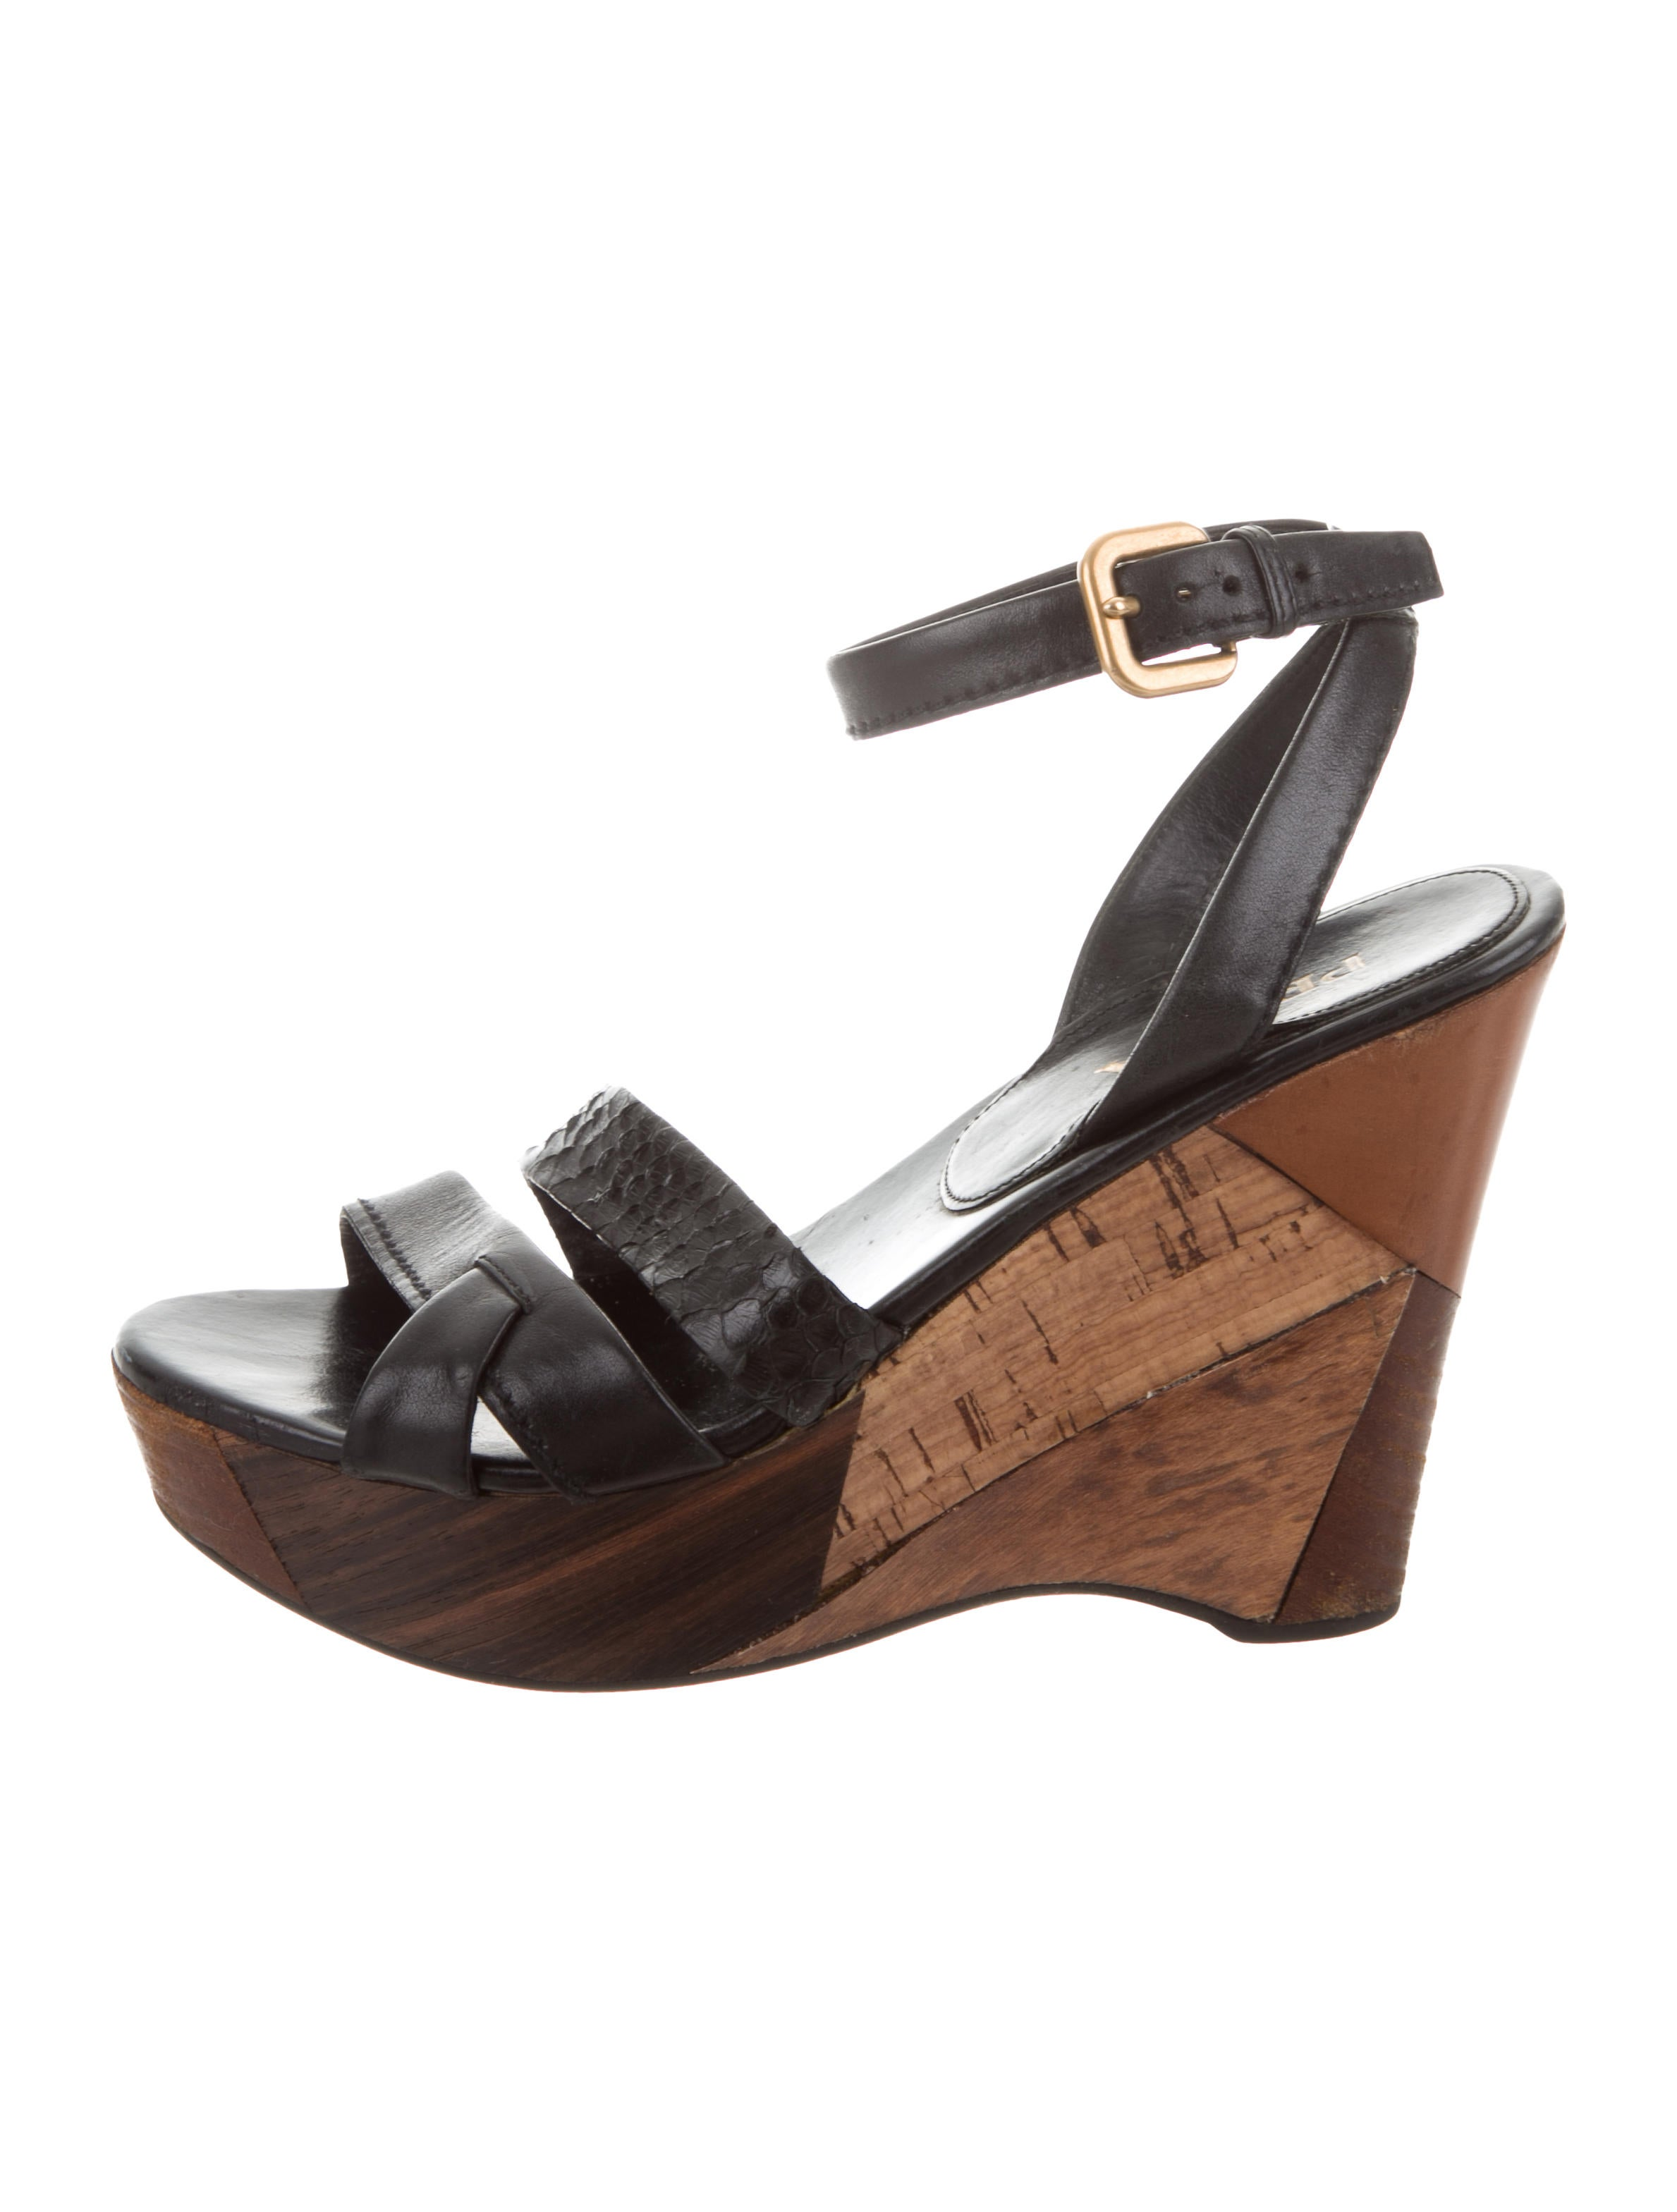 many kinds of sale online outlet cheap Prada Snakeskin Multistrap Wedges collections for sale qHQpJmpcA